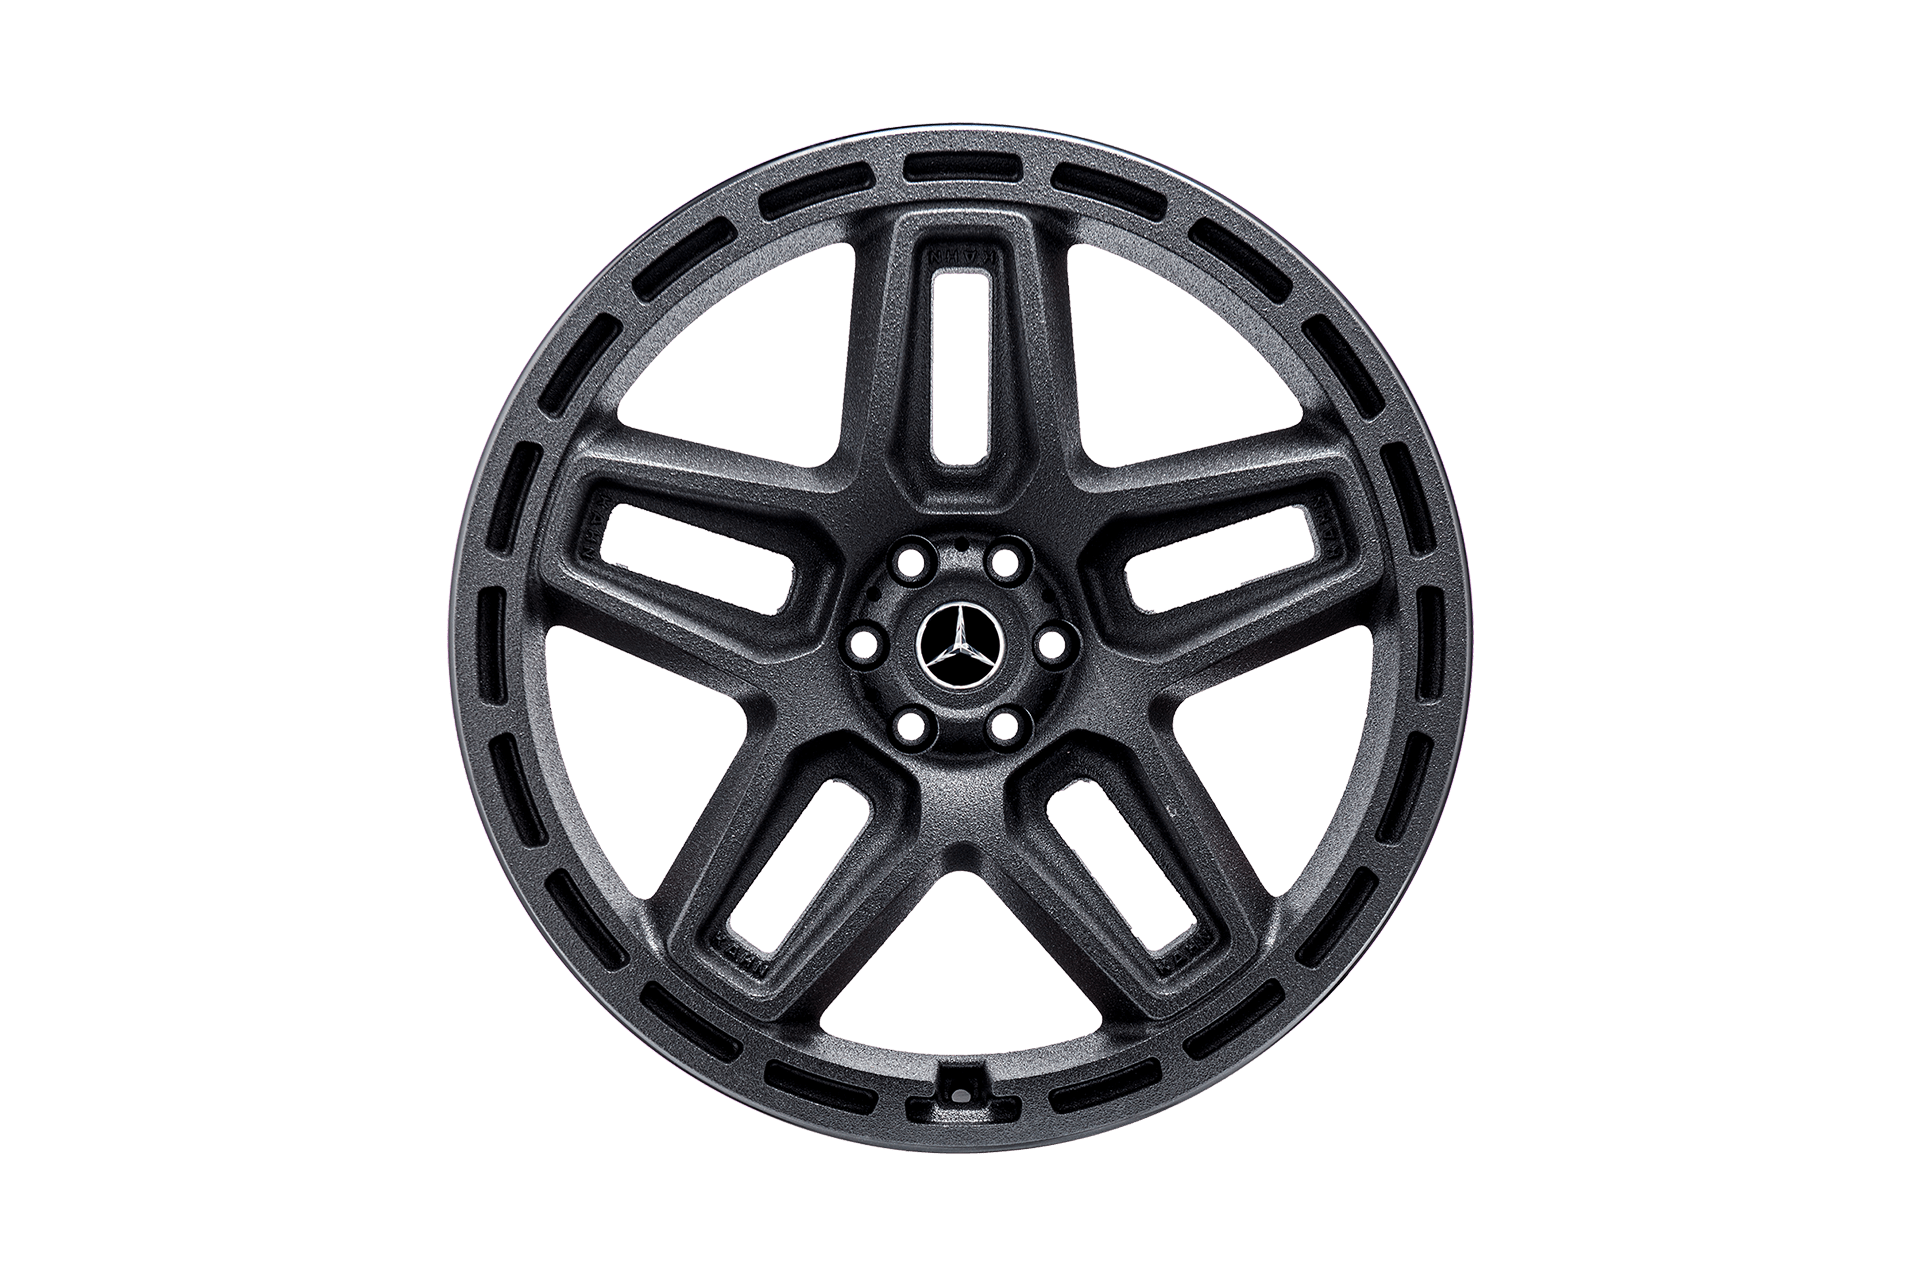 Mercedes Benz X-Class (2019-Present) G06 Light Alloy Wheels by Kahn - Image 2980